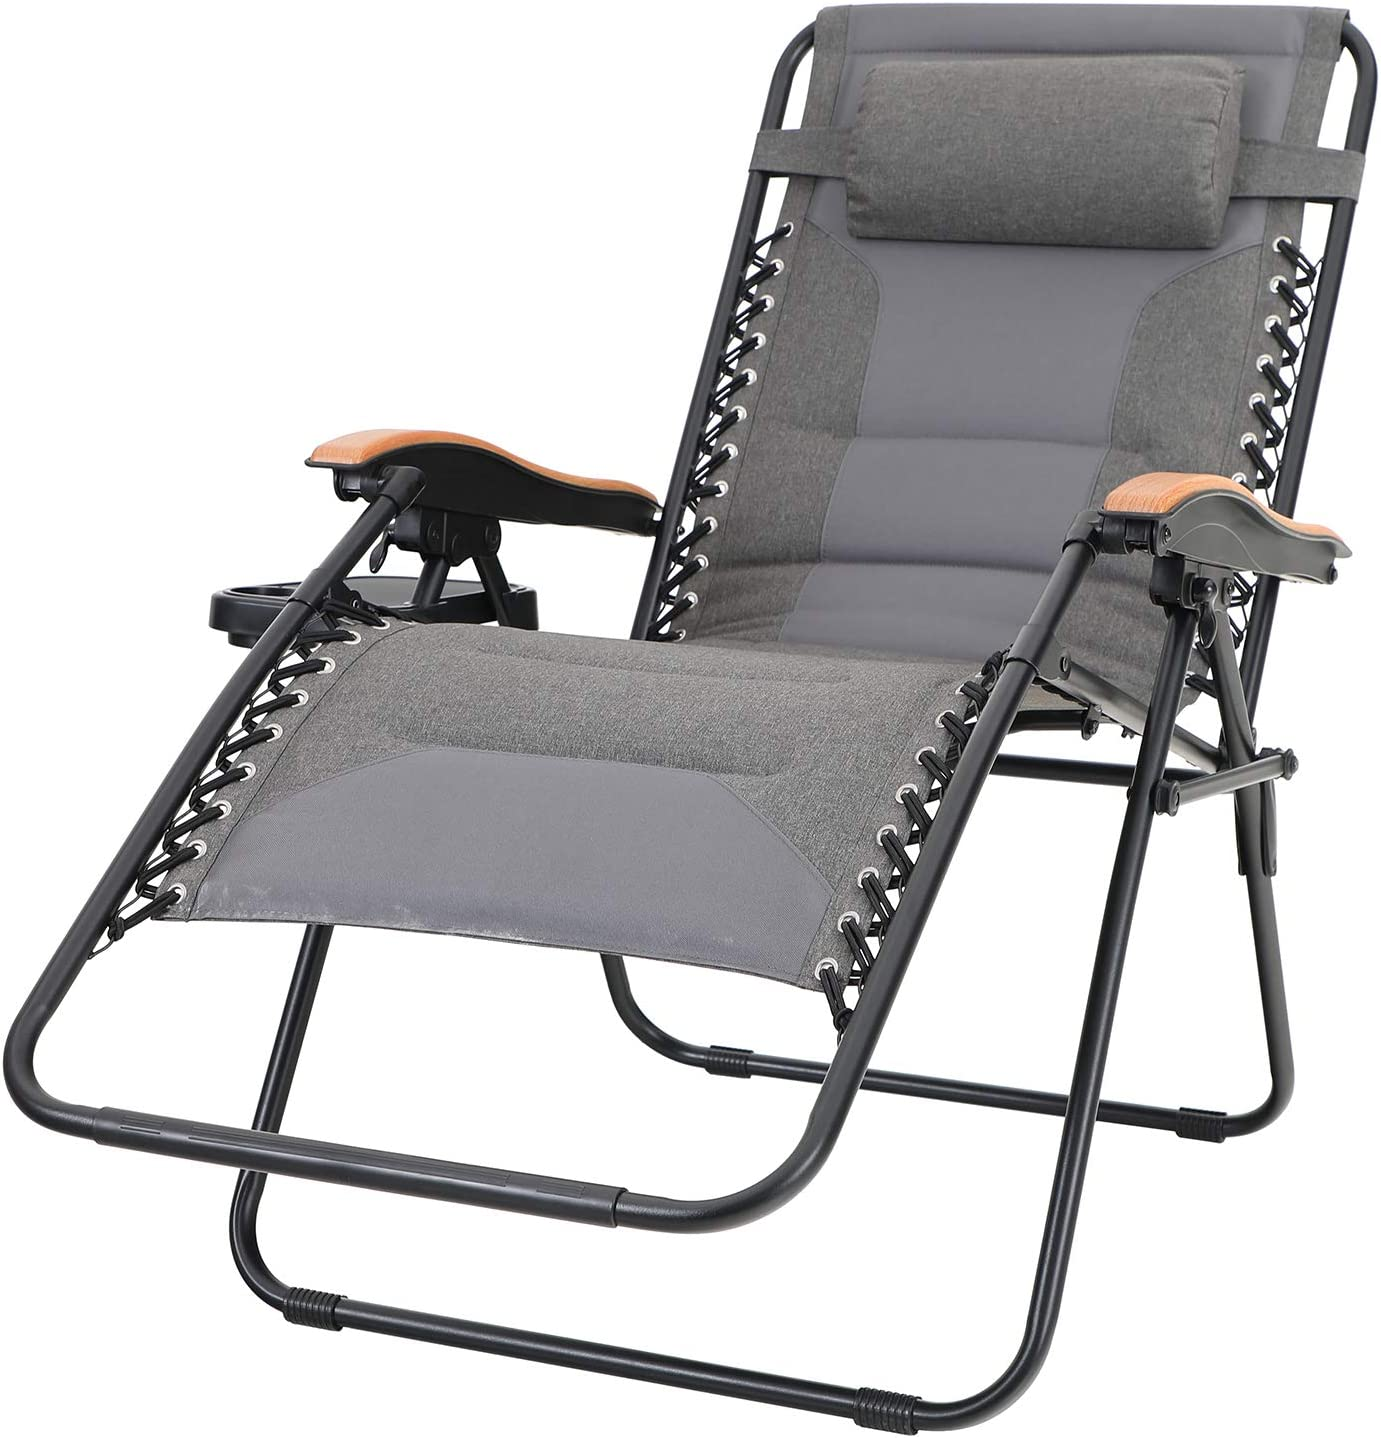 Sophia & William Padded Zero Gravity Chair Oversize Lounge Chair with Free Cup Holder, Supports 350 LBS (Grey)